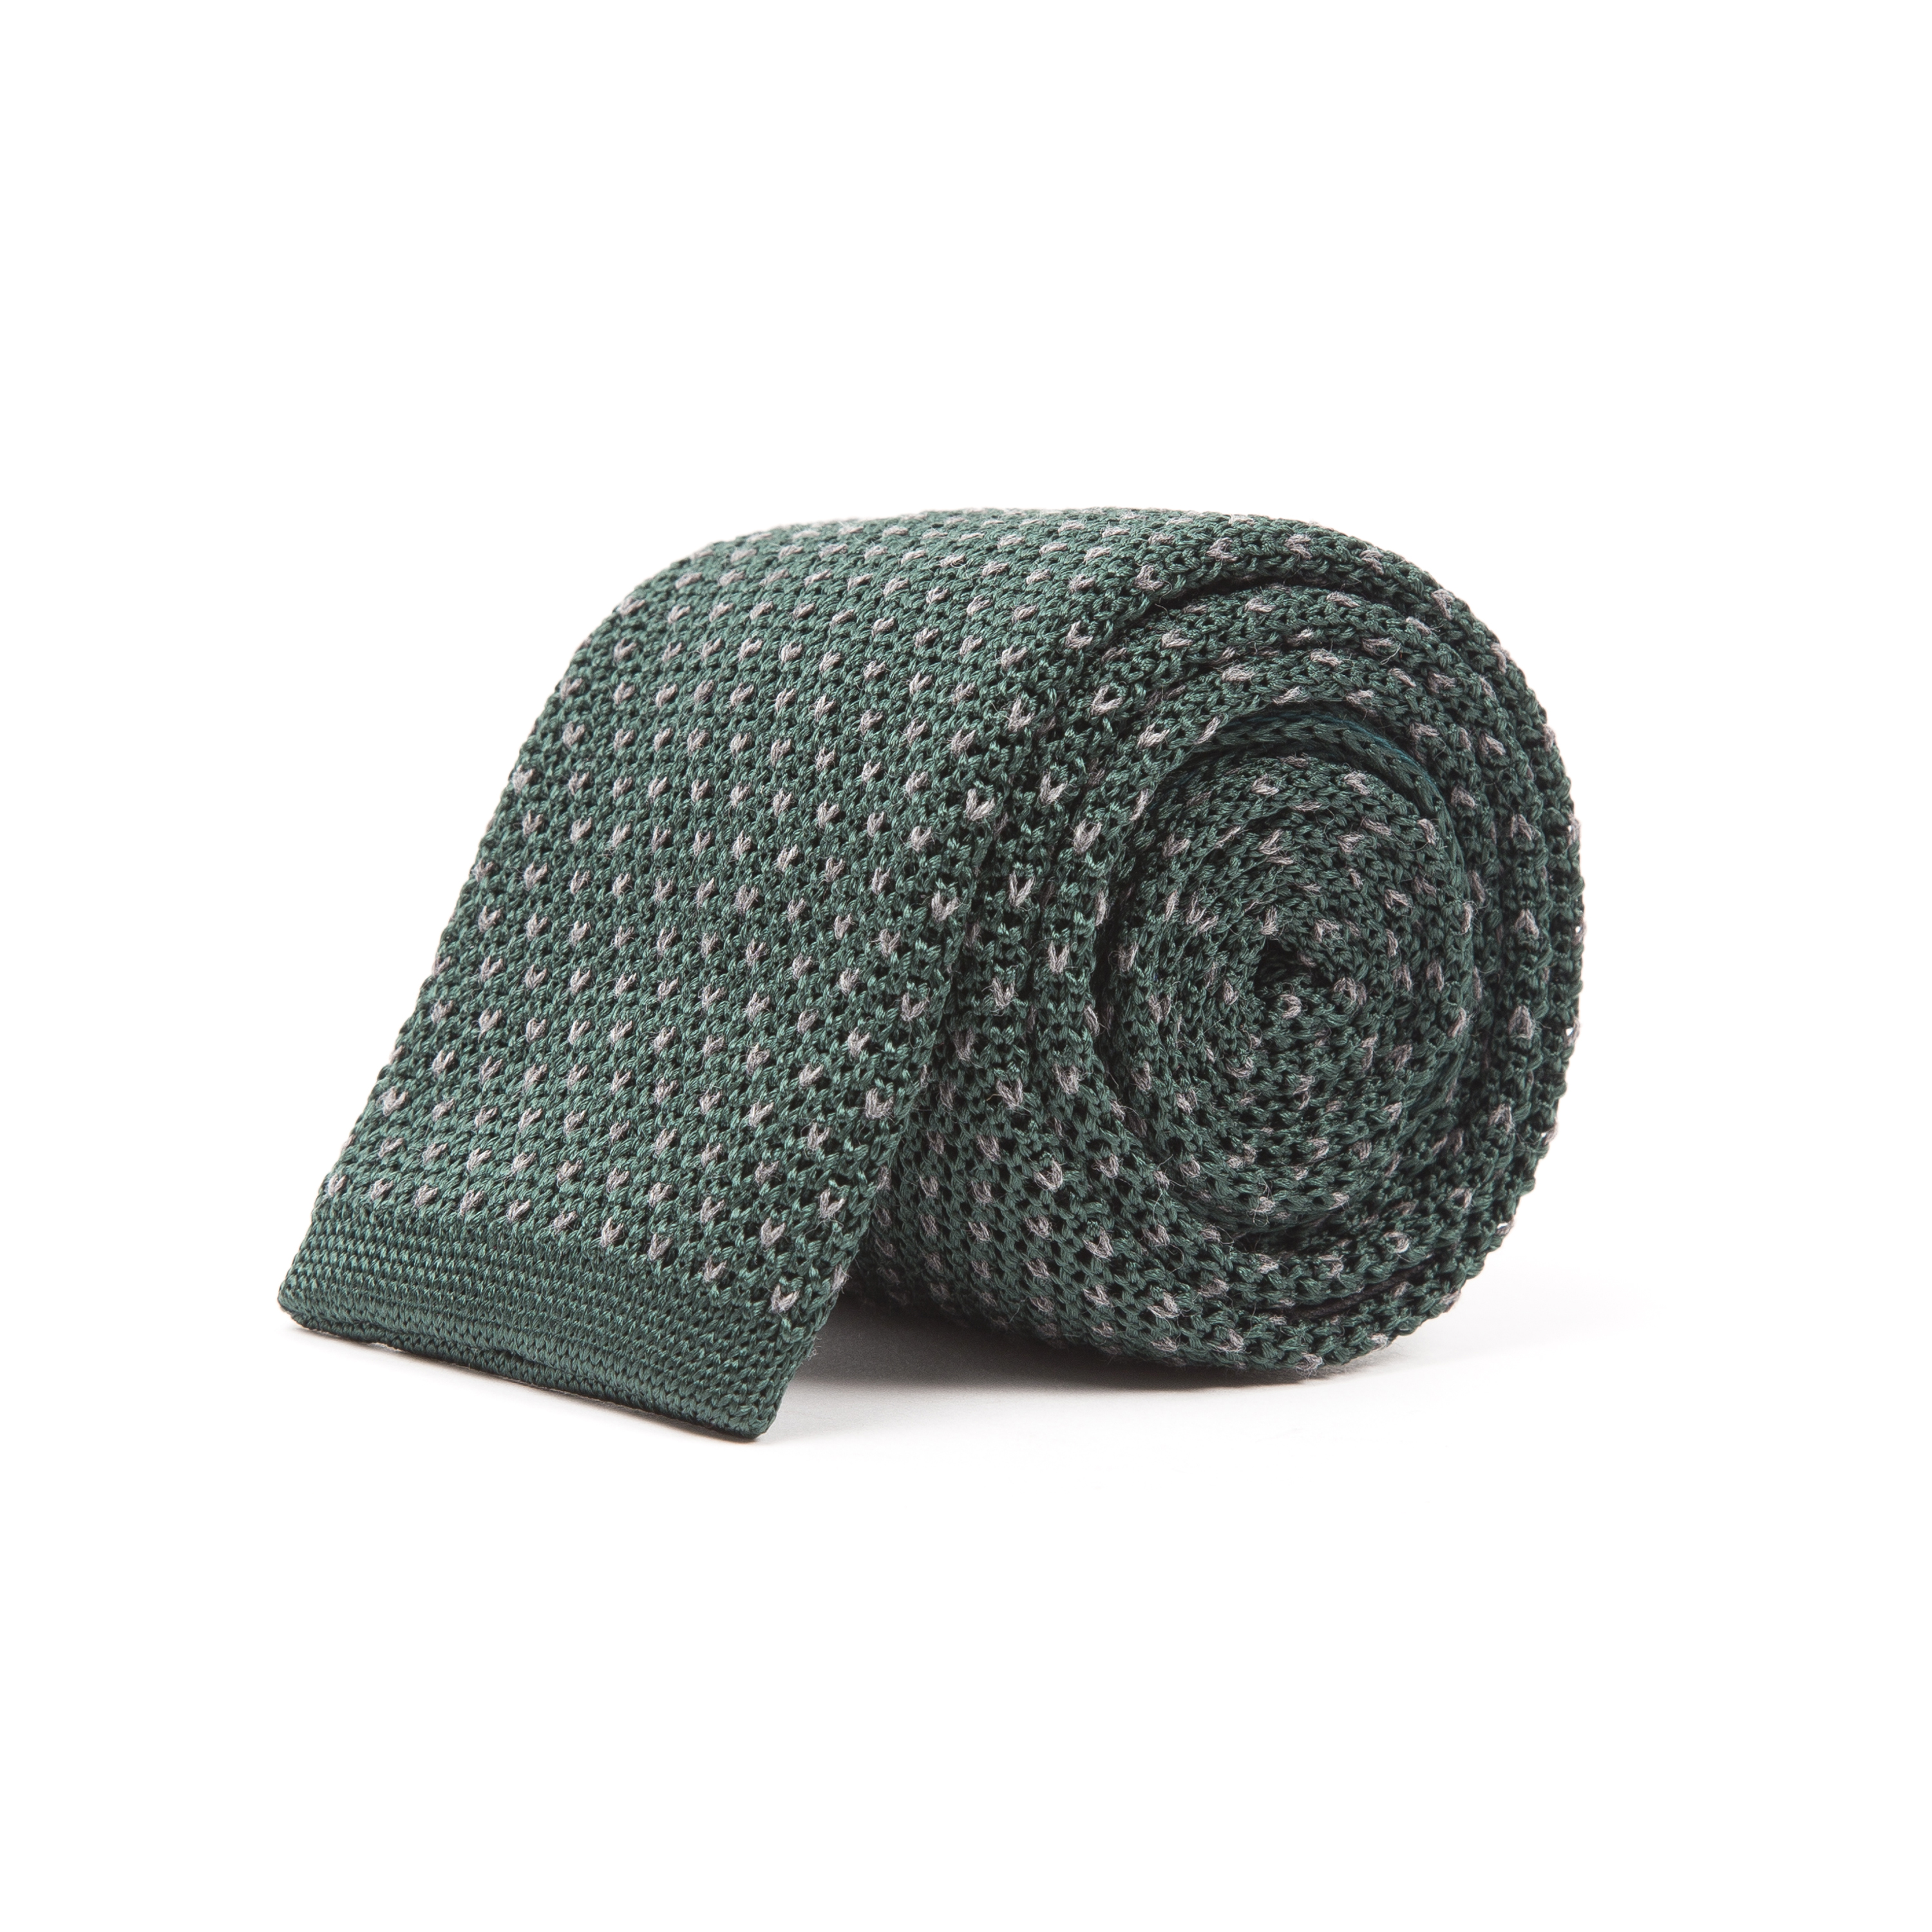 Timothy Everest Green Knitted Tie with Contrast Dots